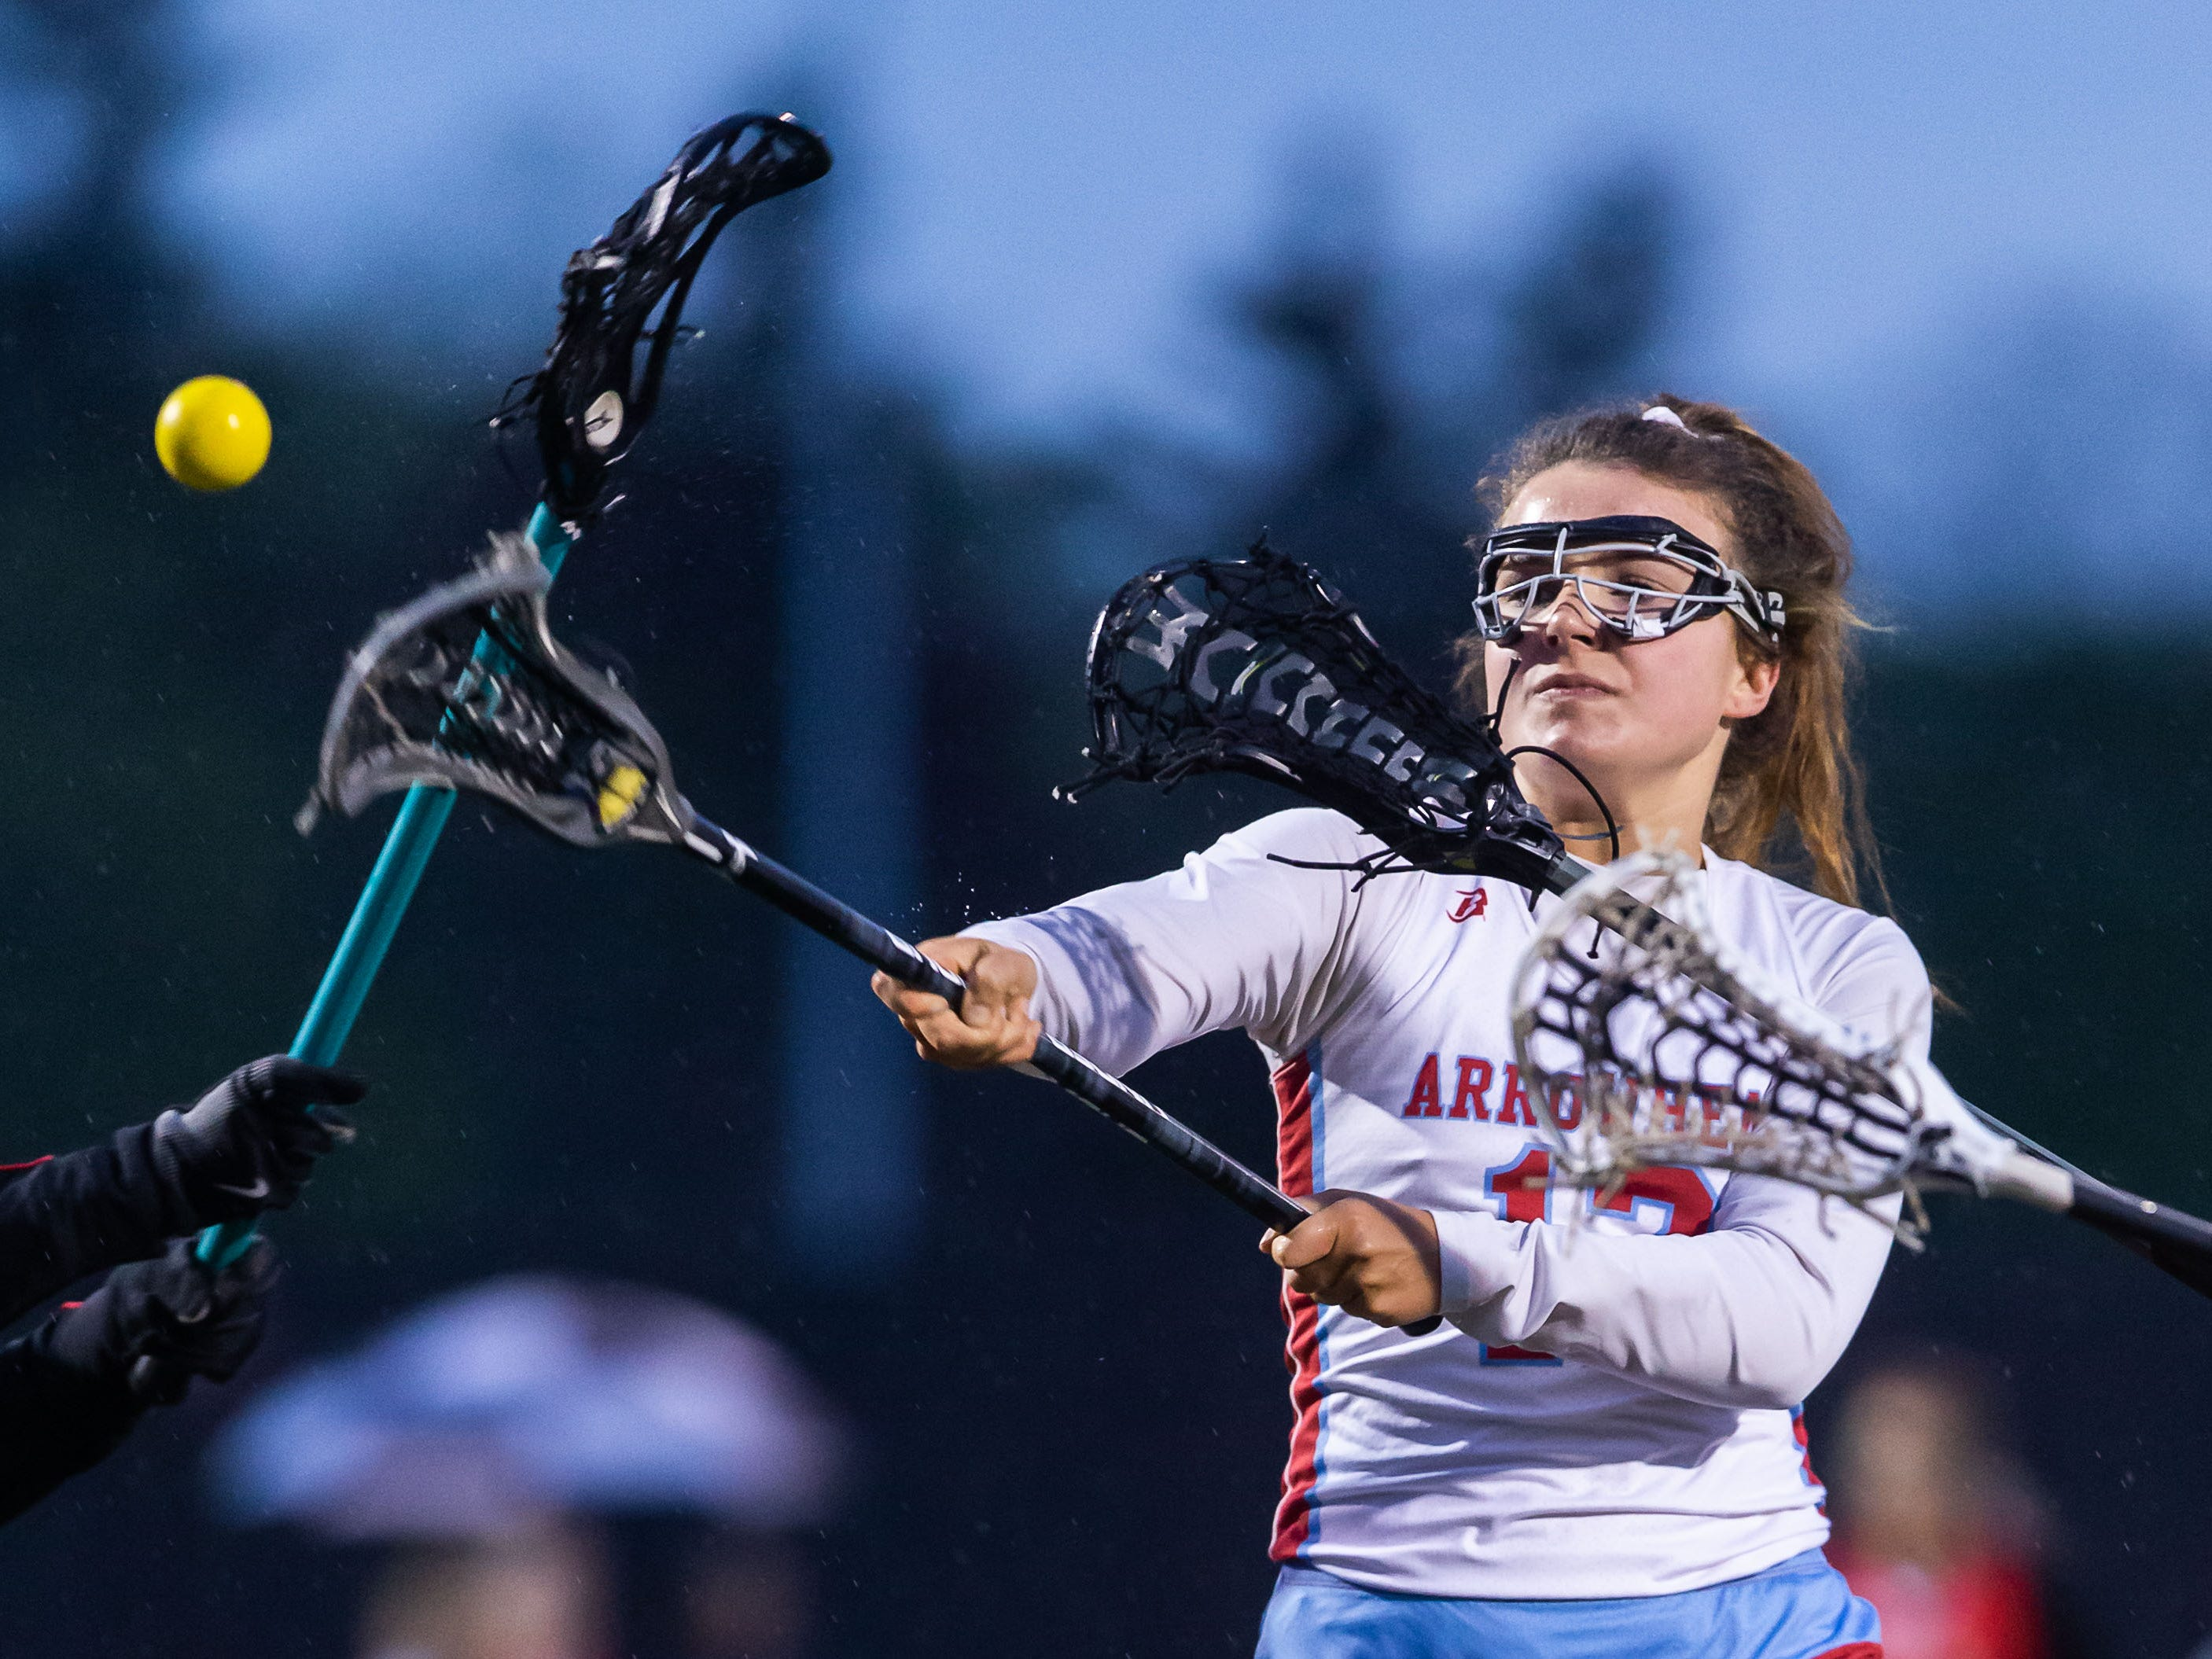 Arrowhead White's Steph Holtz (12) takes a shot on goal during the game at home against Divine Savior Holy Angels on Friday, May 17, 2019.